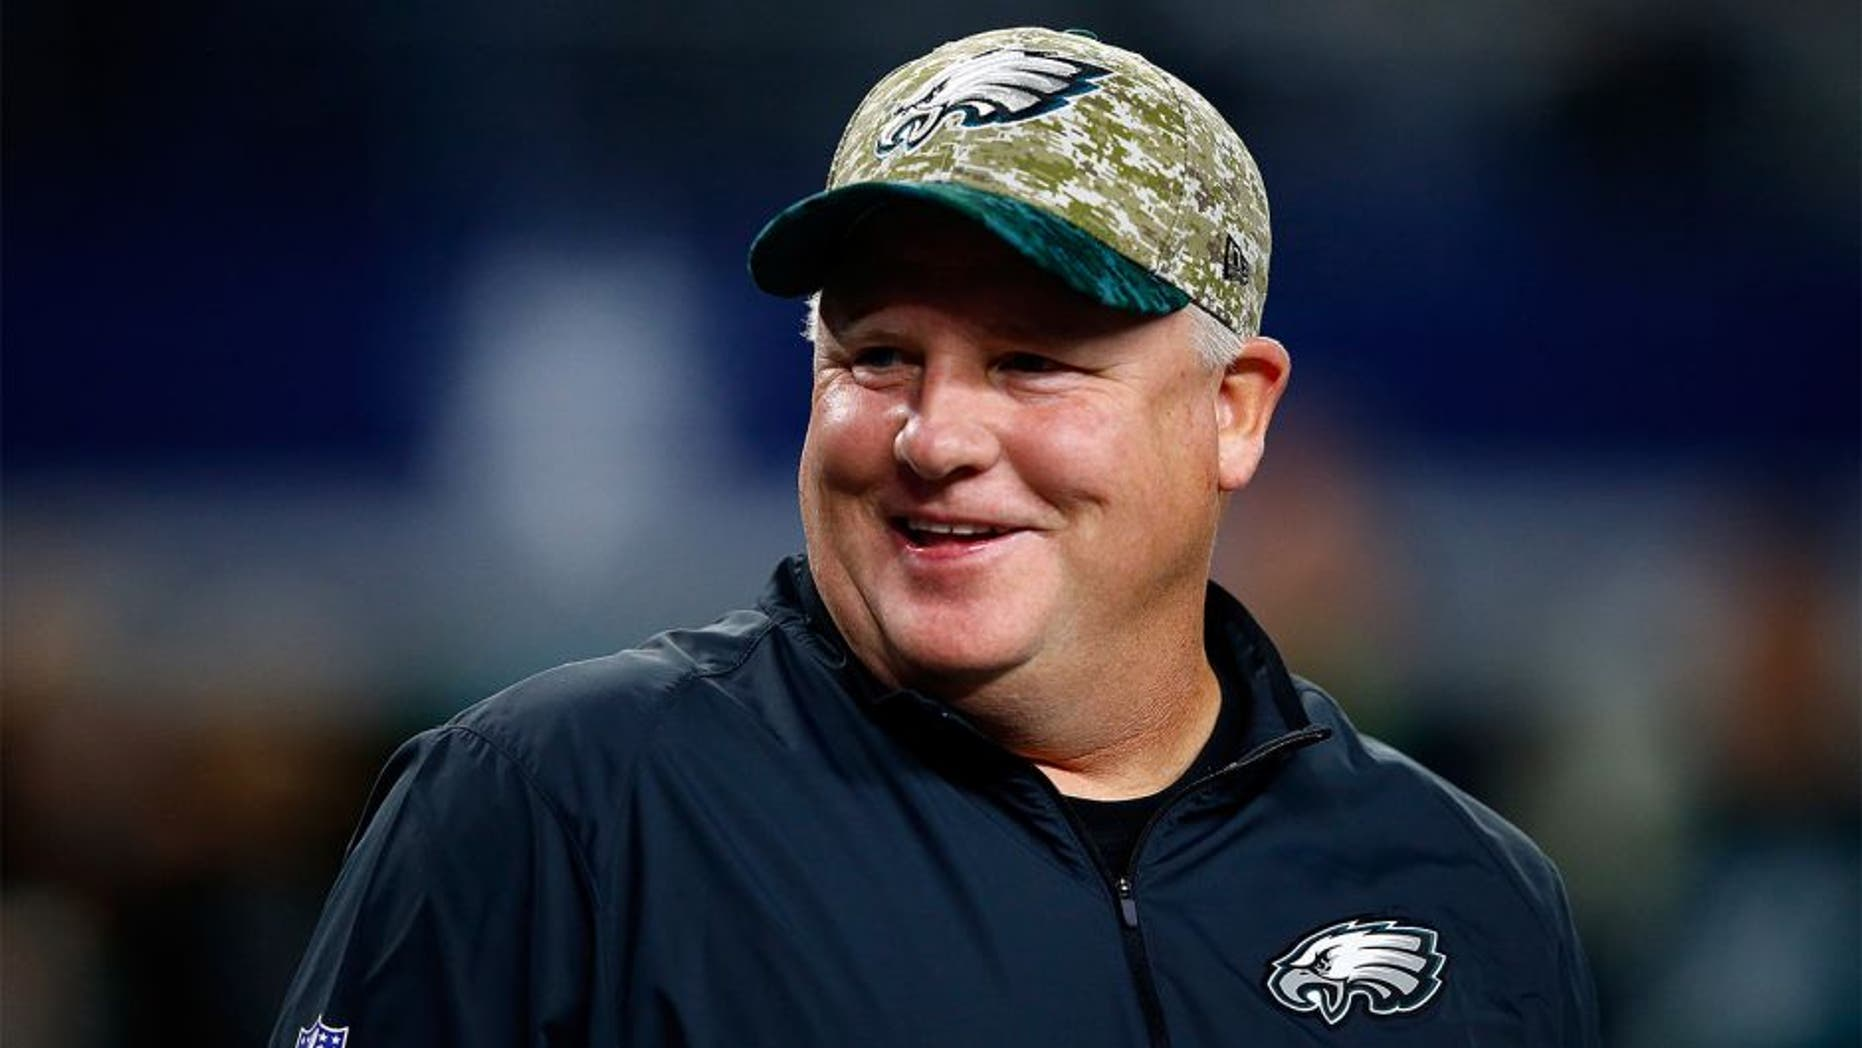 ARLINGTON, TX - NOVEMBER 08: Head coach Chip Kelly of the Philadelphia Eagles talks with players during warm-ups prior to the game against the Dallas Cowboys on November 8, 2015 in Arlington, Texas. (Photo by Jamie Squire/Getty Images)